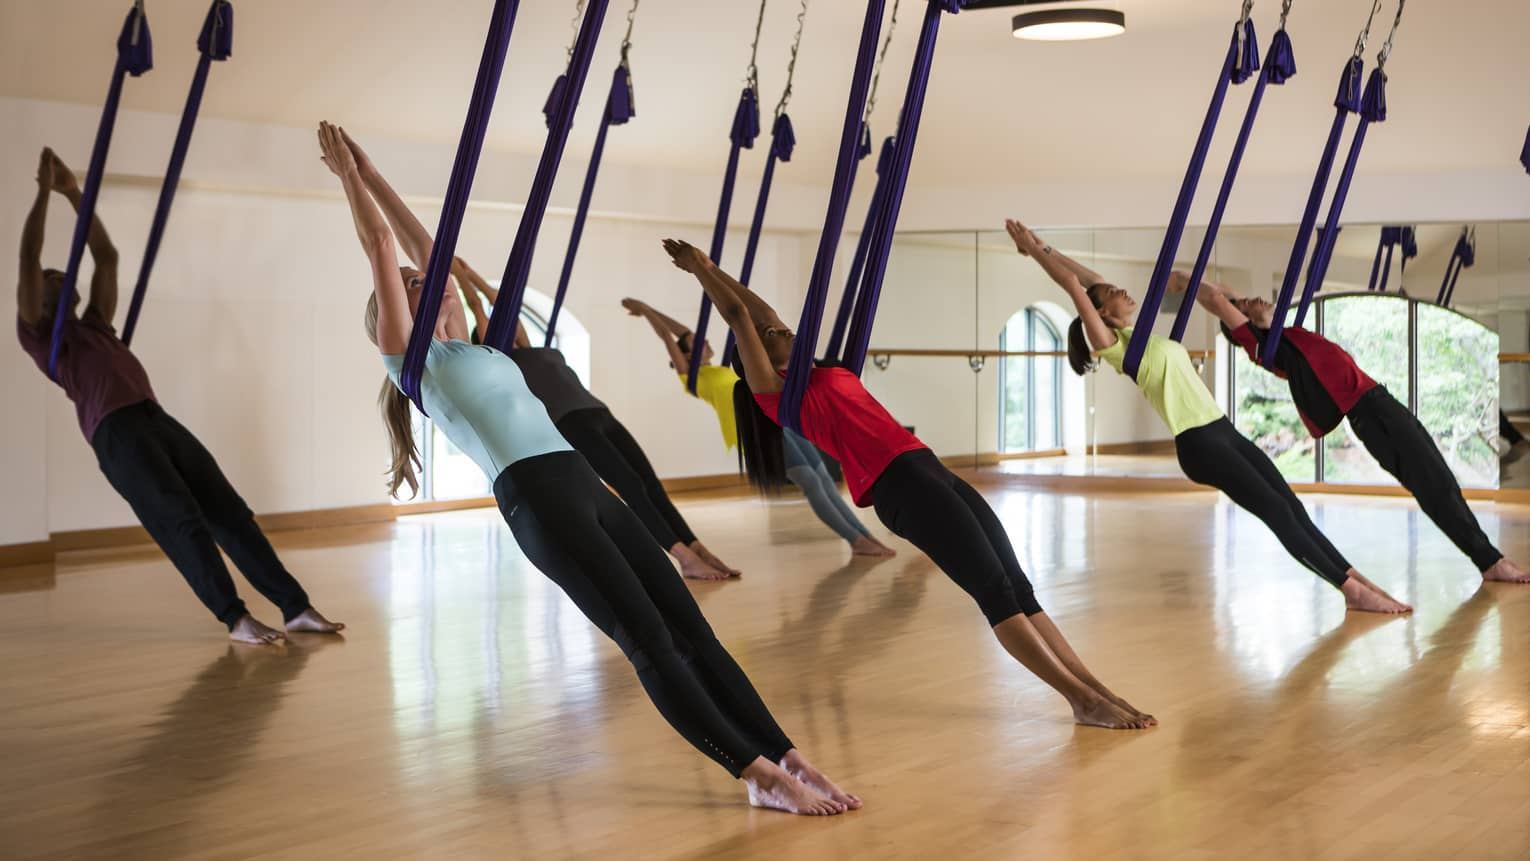 Group of people lean back on small hammocks from ceiling in anti-gravity yoga session